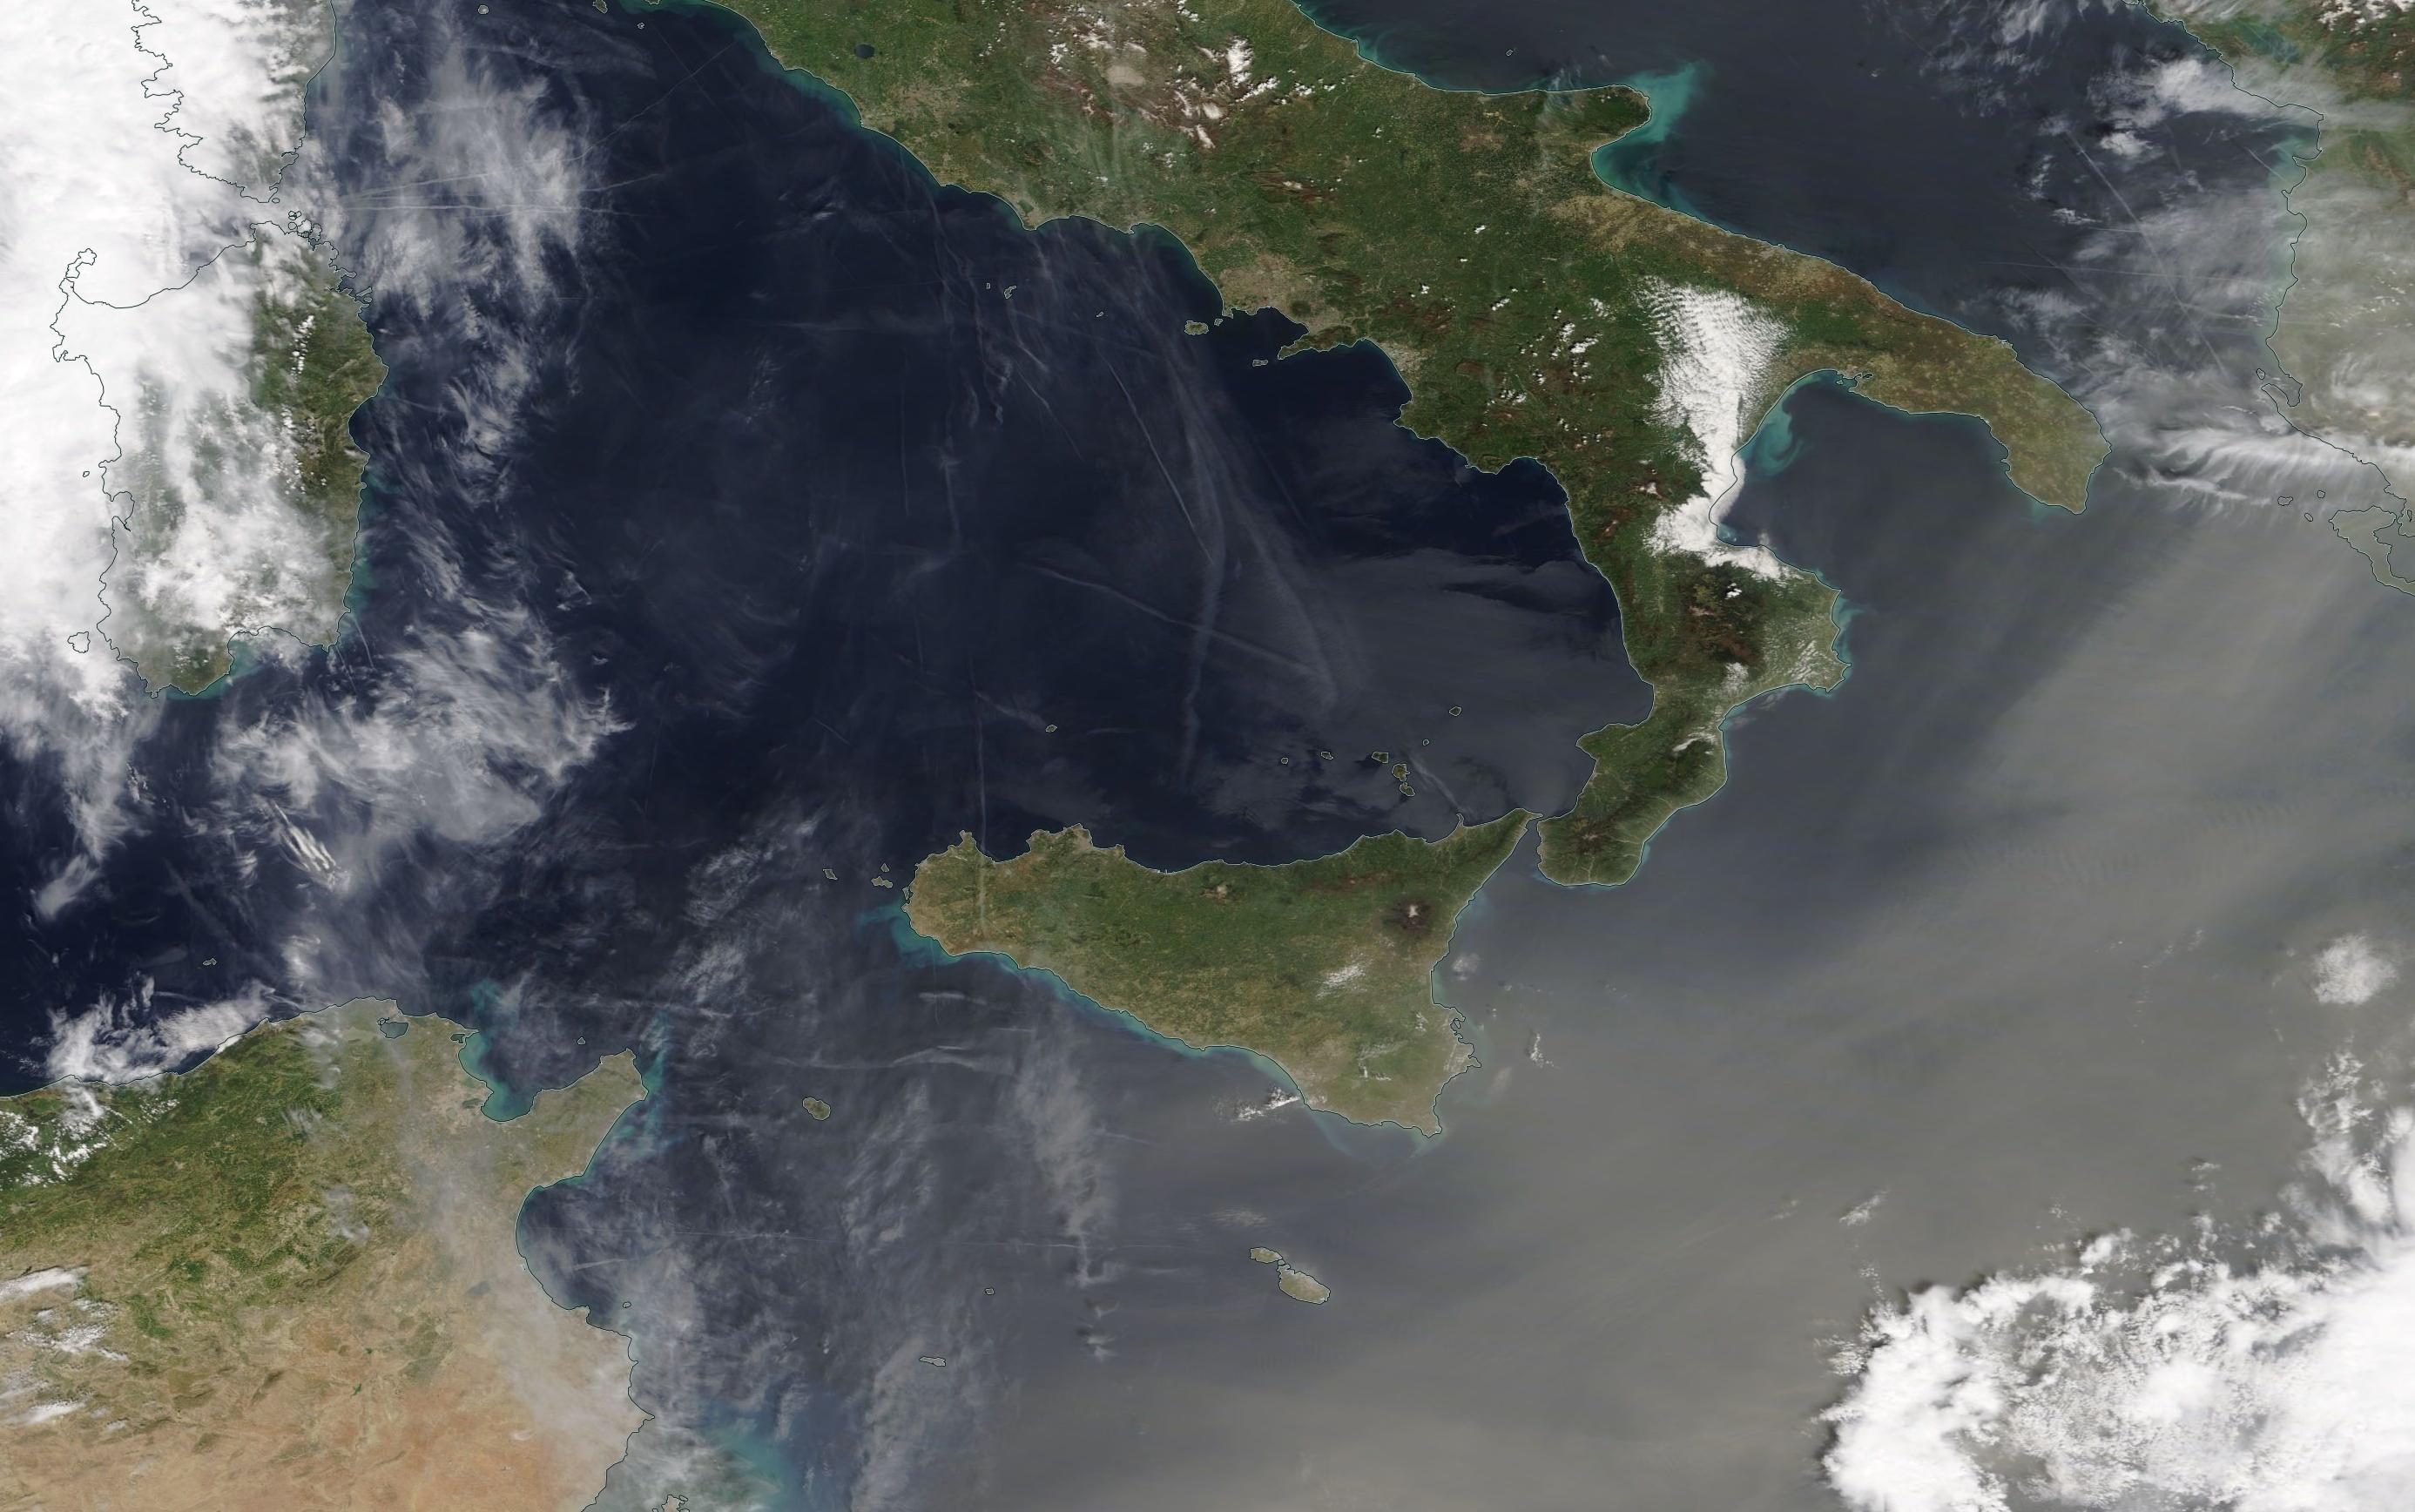 chemtrails Tyrrhenian Sea 24 April 2019 .... https://go.nasa.gov/2UZgpKi ... note with even slight mag we can see lots of chemtrail